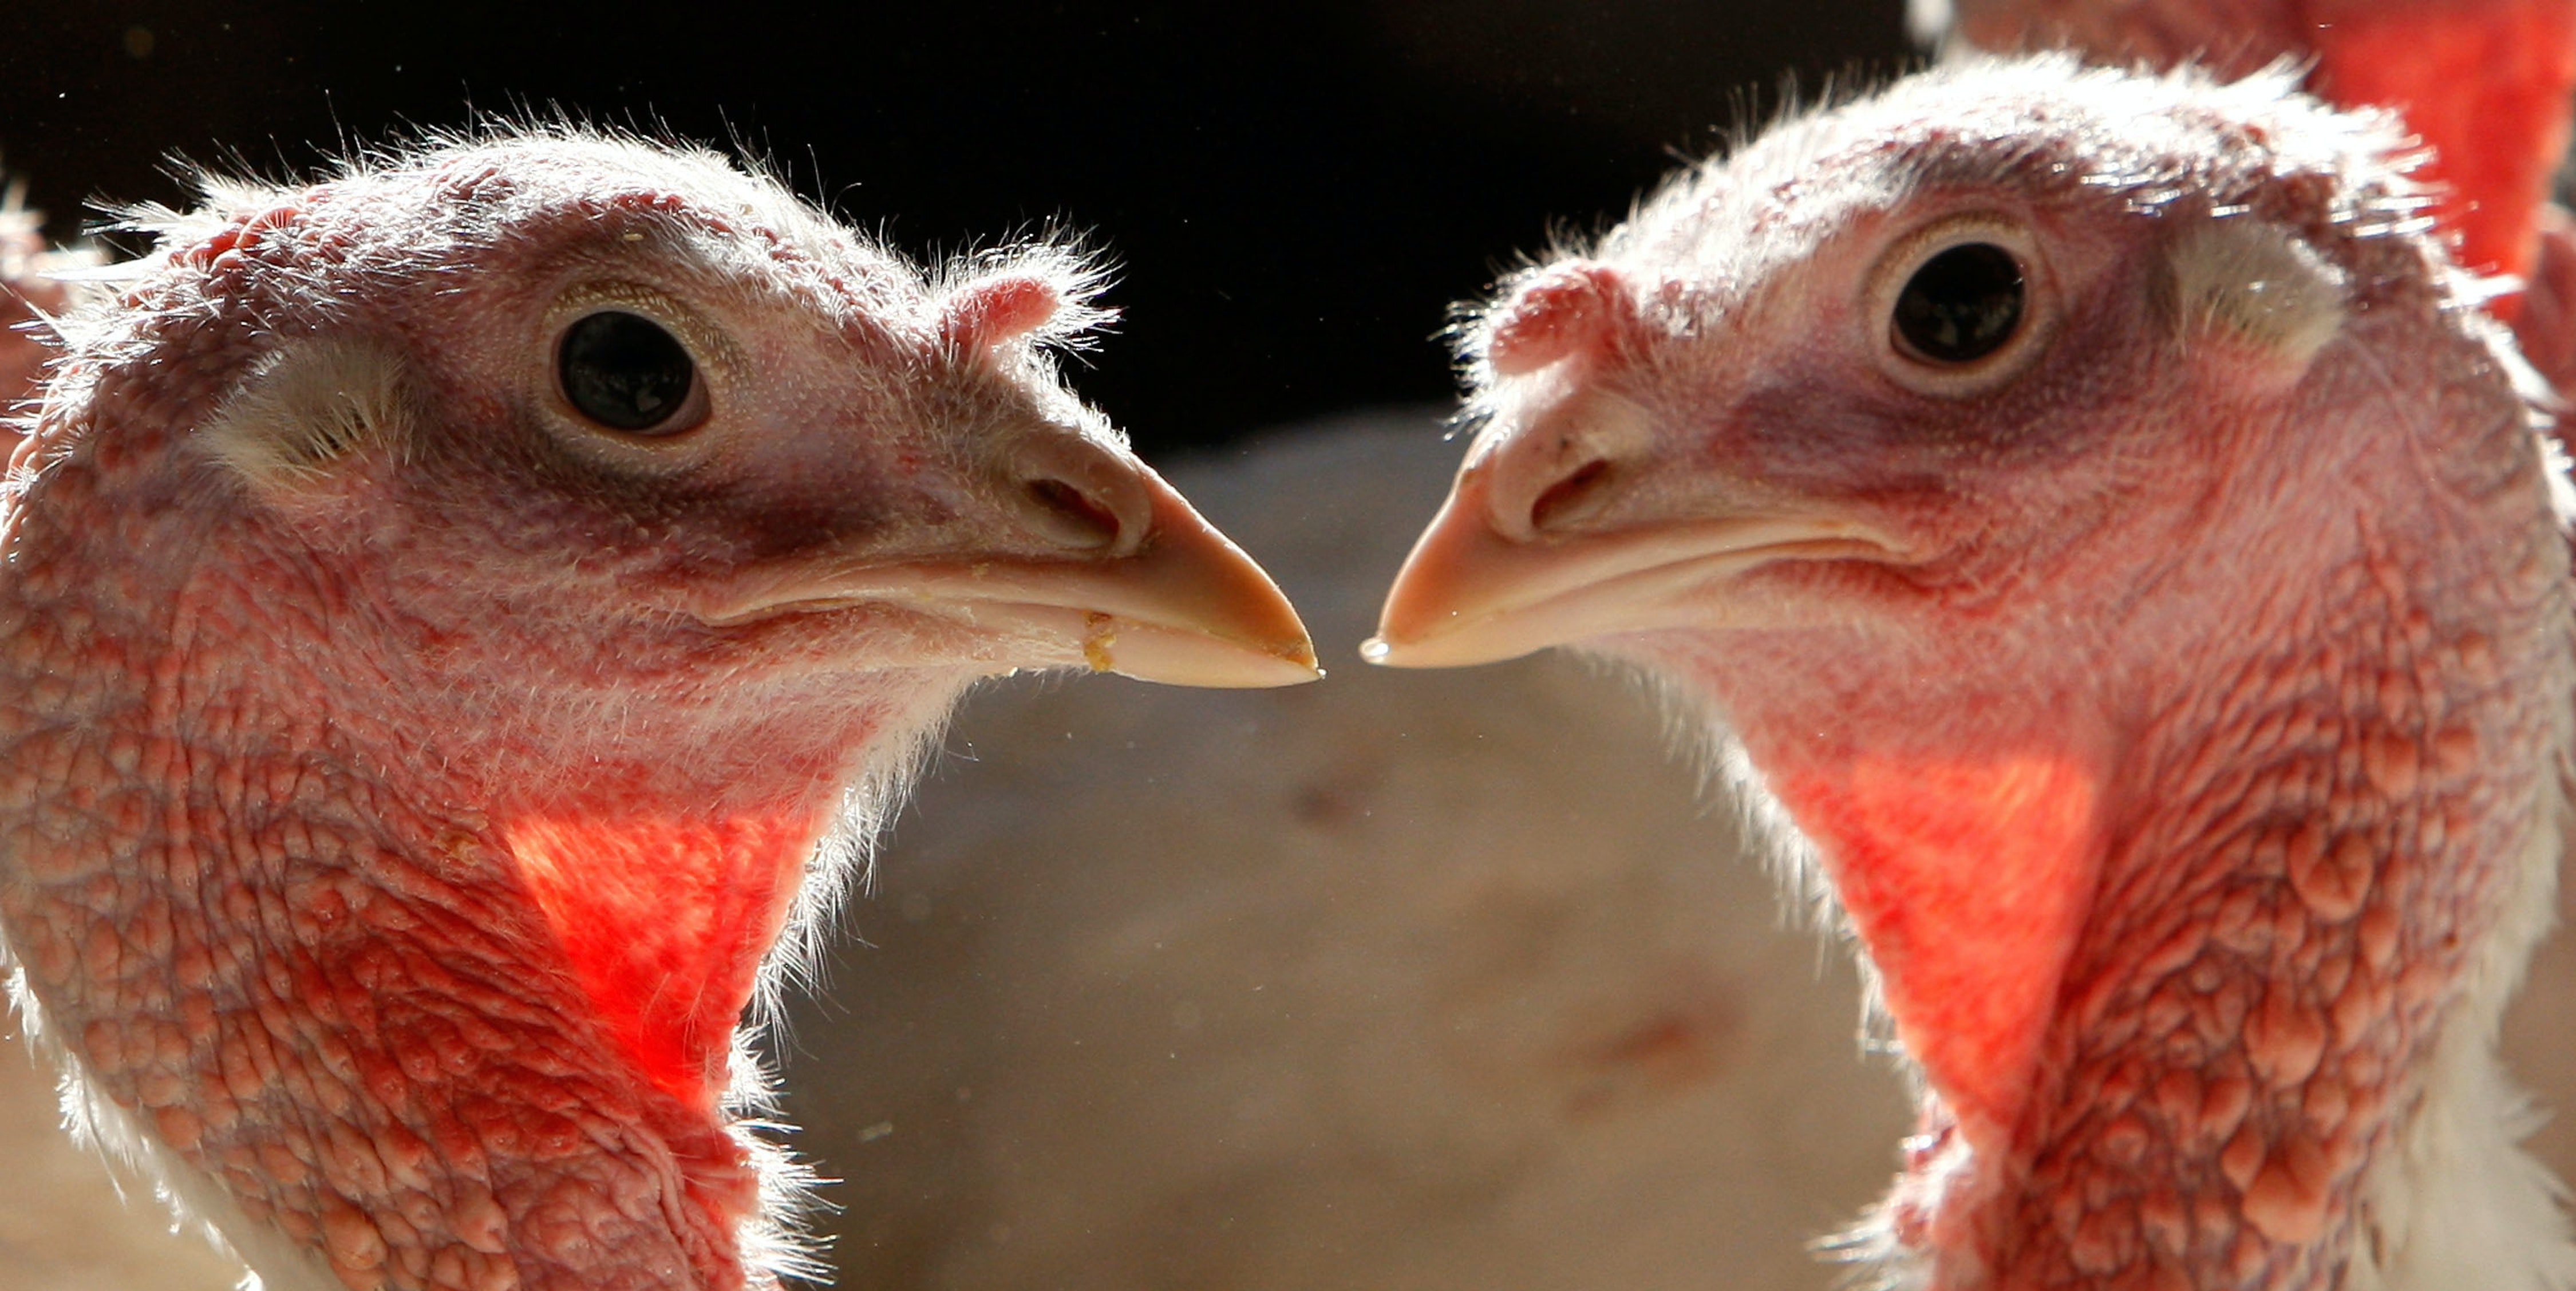 SONOMA, CA - NOVEMBER 19:  With less than one week before Thanksgiving, two turkeys touch their beaks in a feeding house at the Willie Bird Turkey Farm November 19, 2007 in Sonoma, California. An estimate of more than forty-five million turkeys are cooked and eaten during the annual Thanksgiving meals in the United States.  (Photo by Justin Sullivan/Getty Images)